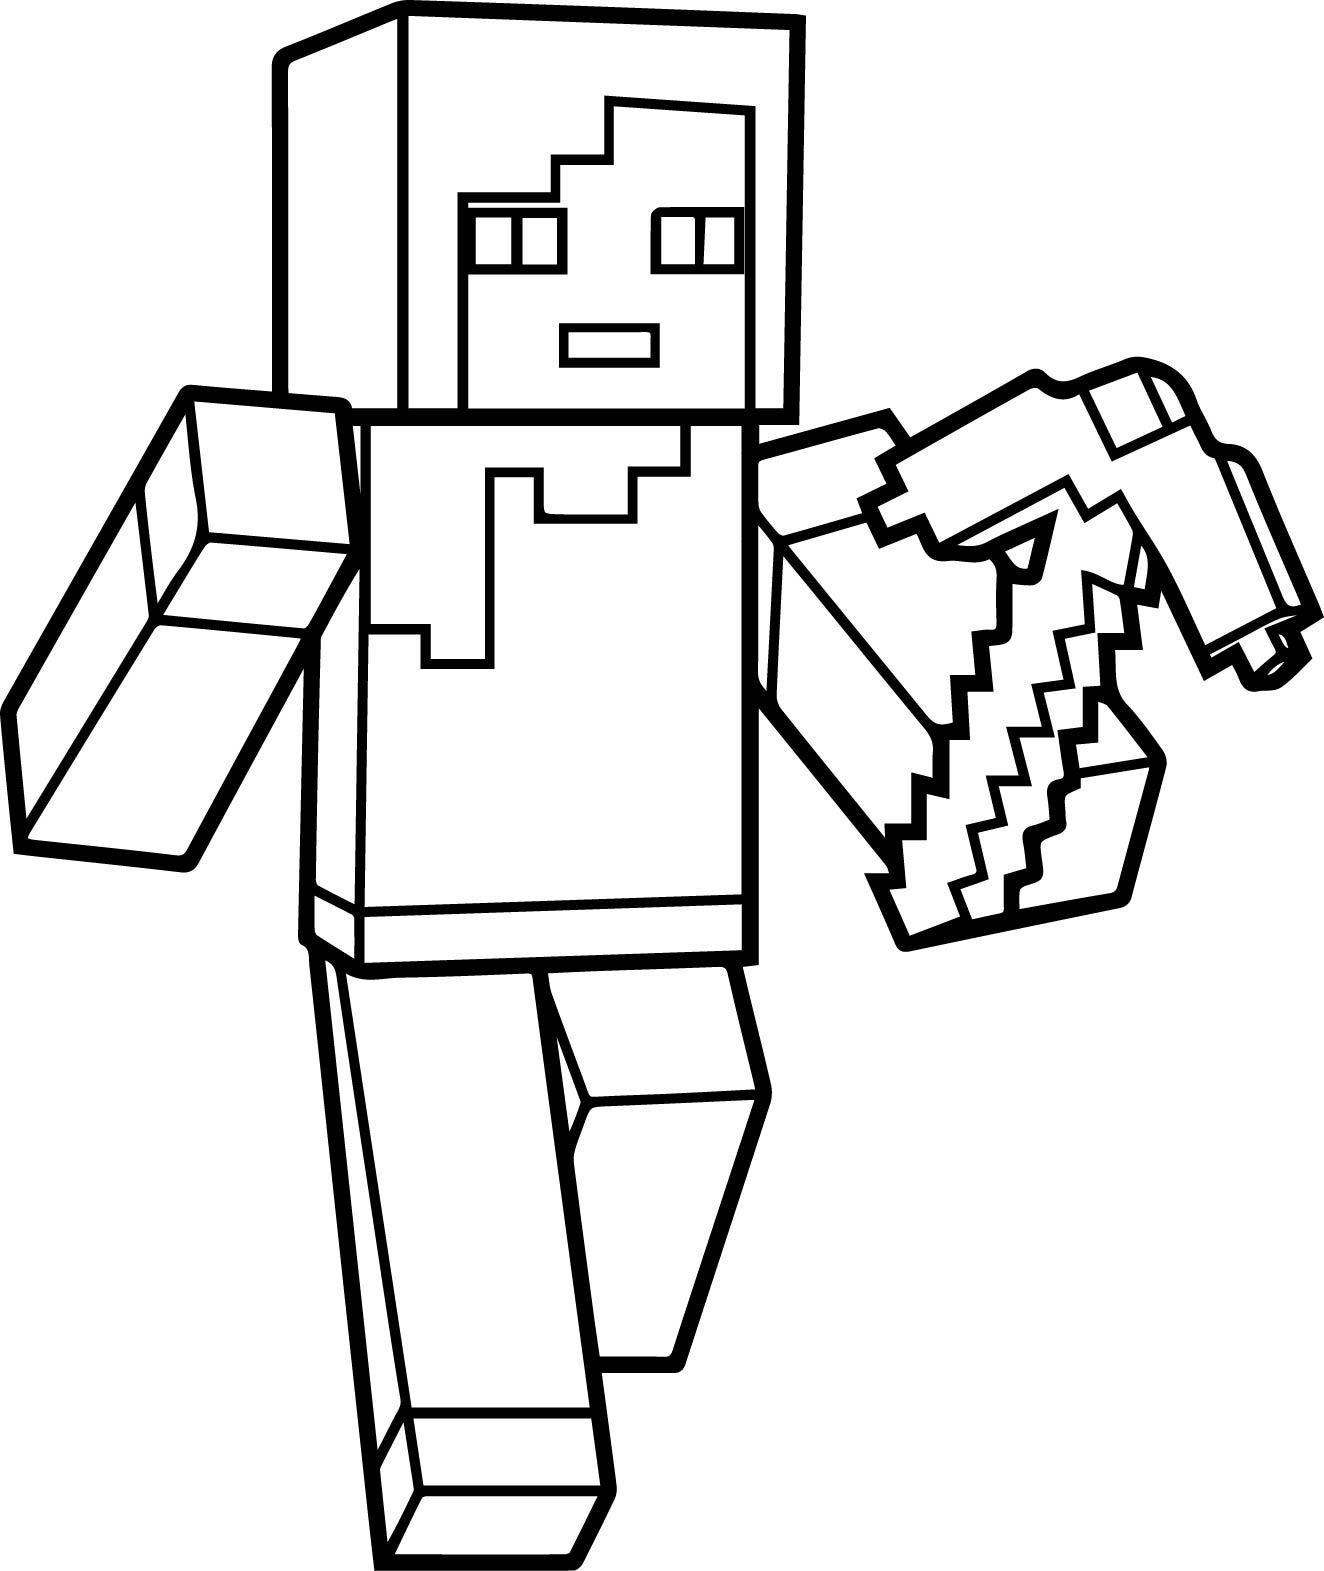 mine craft coloring pages minecraft coloring page coloring home pages mine craft coloring